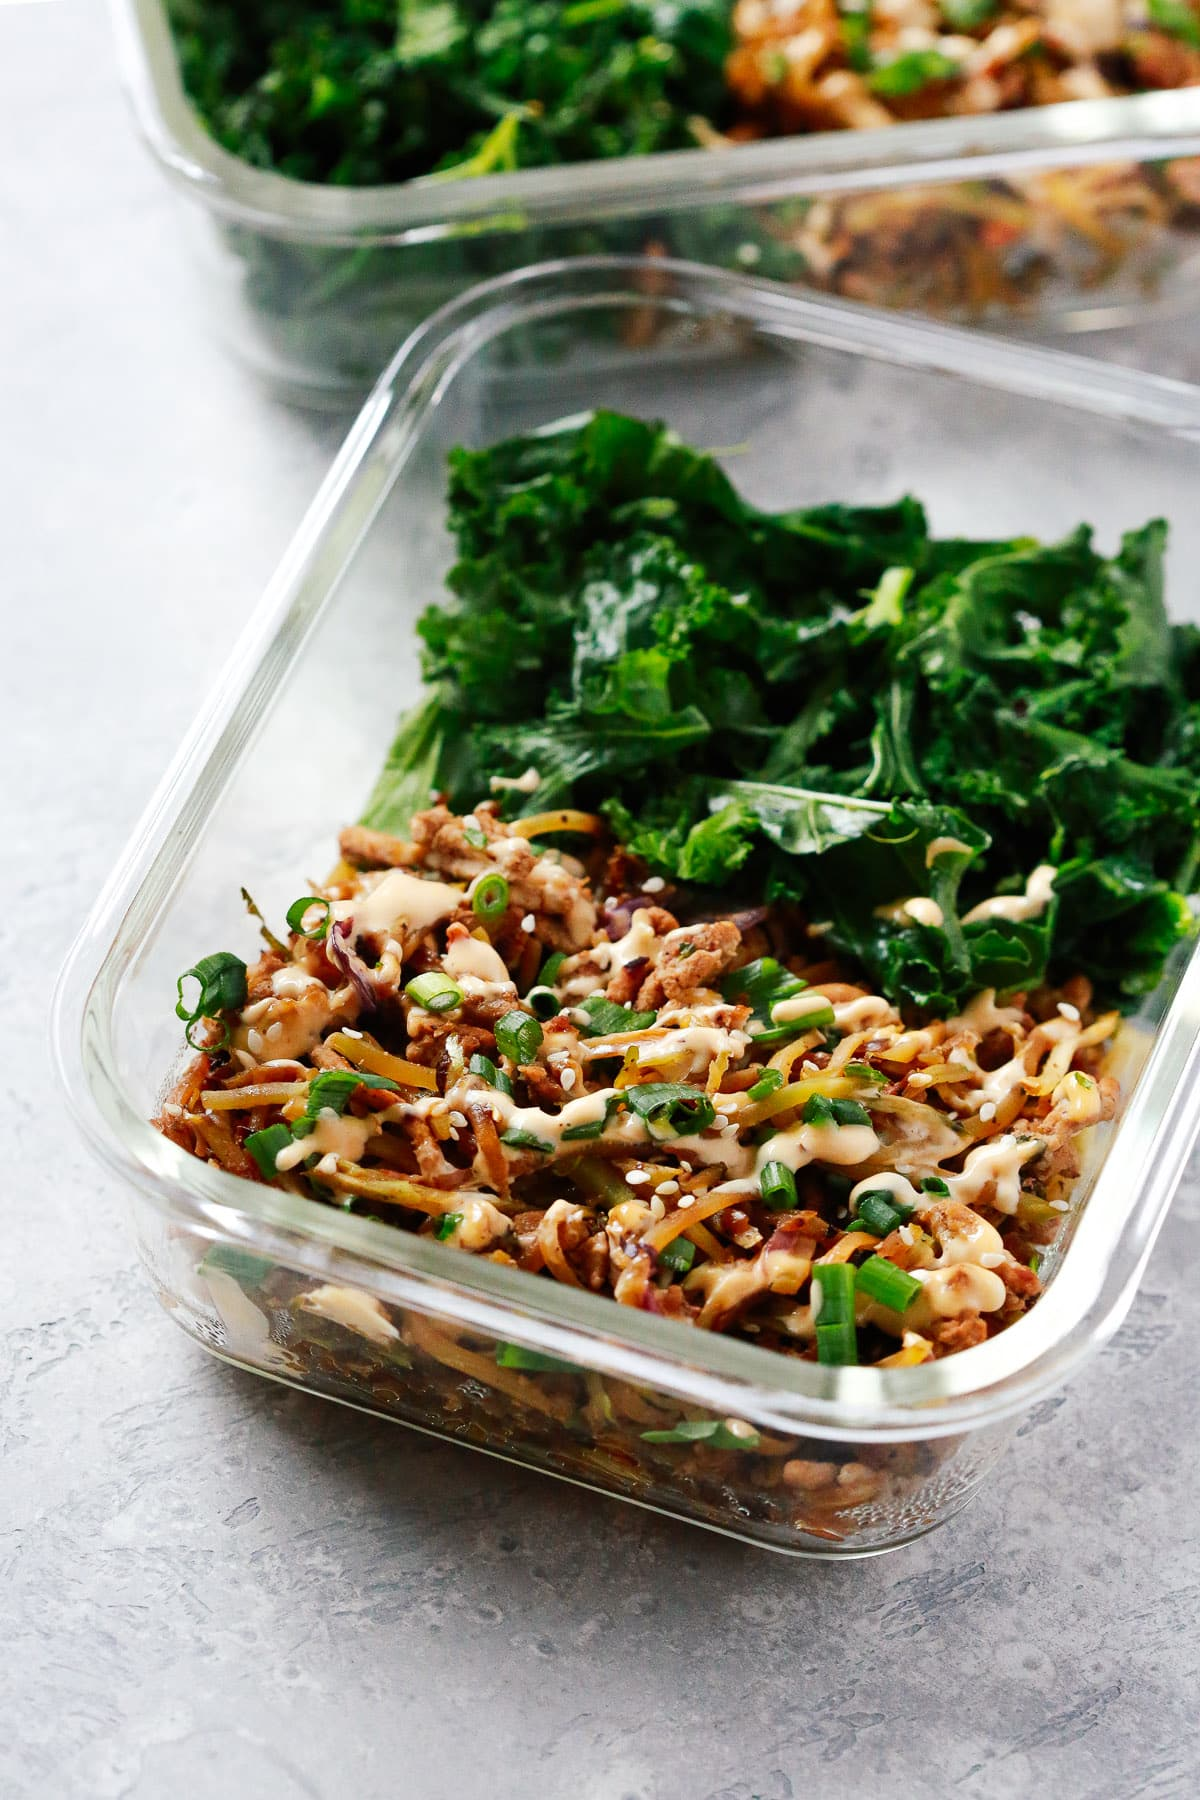 Low-carb Egg Roll in a Bowl with Sauteed Kale